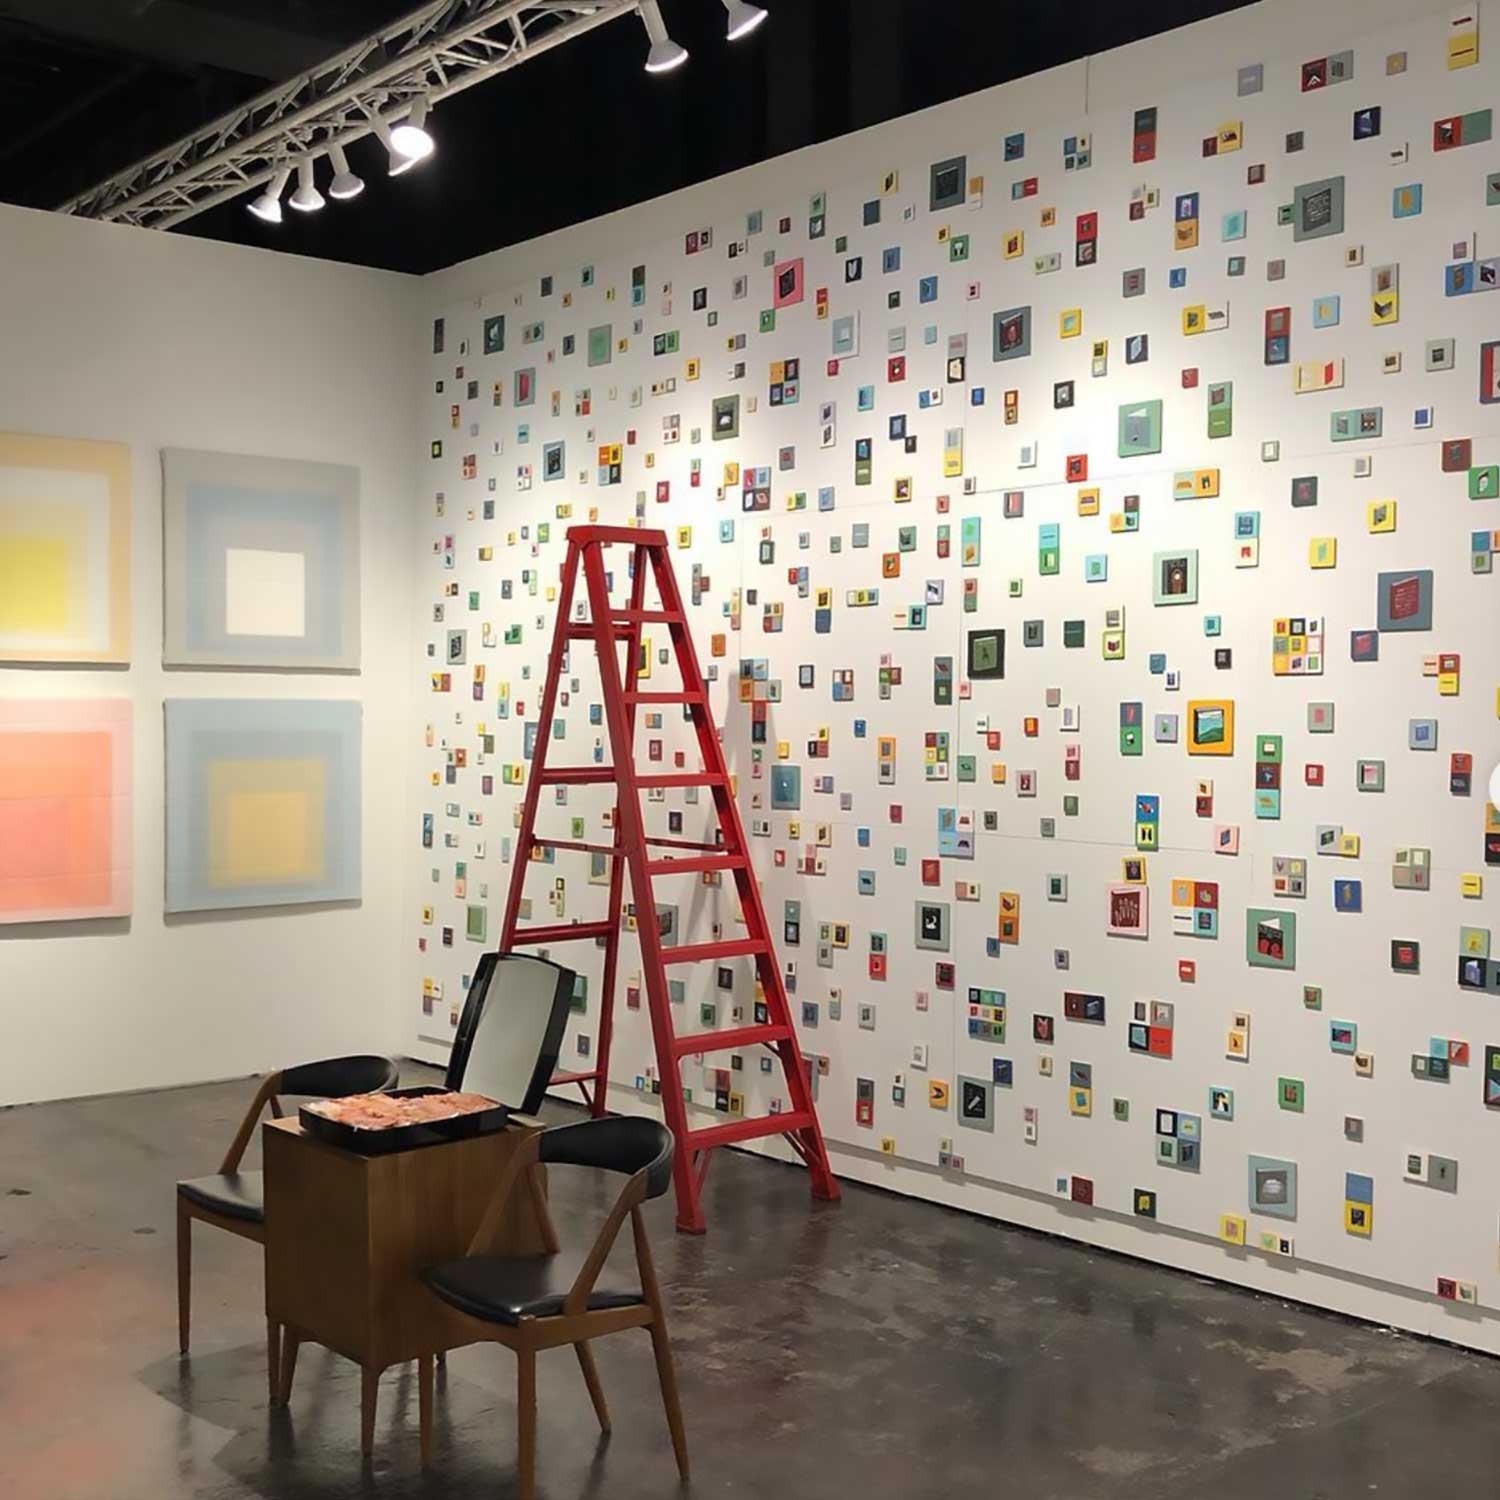 Vue d'installation, NADA 2018, Tammi Campbell ,  Dumontier & Farber ,  Chloe Wise